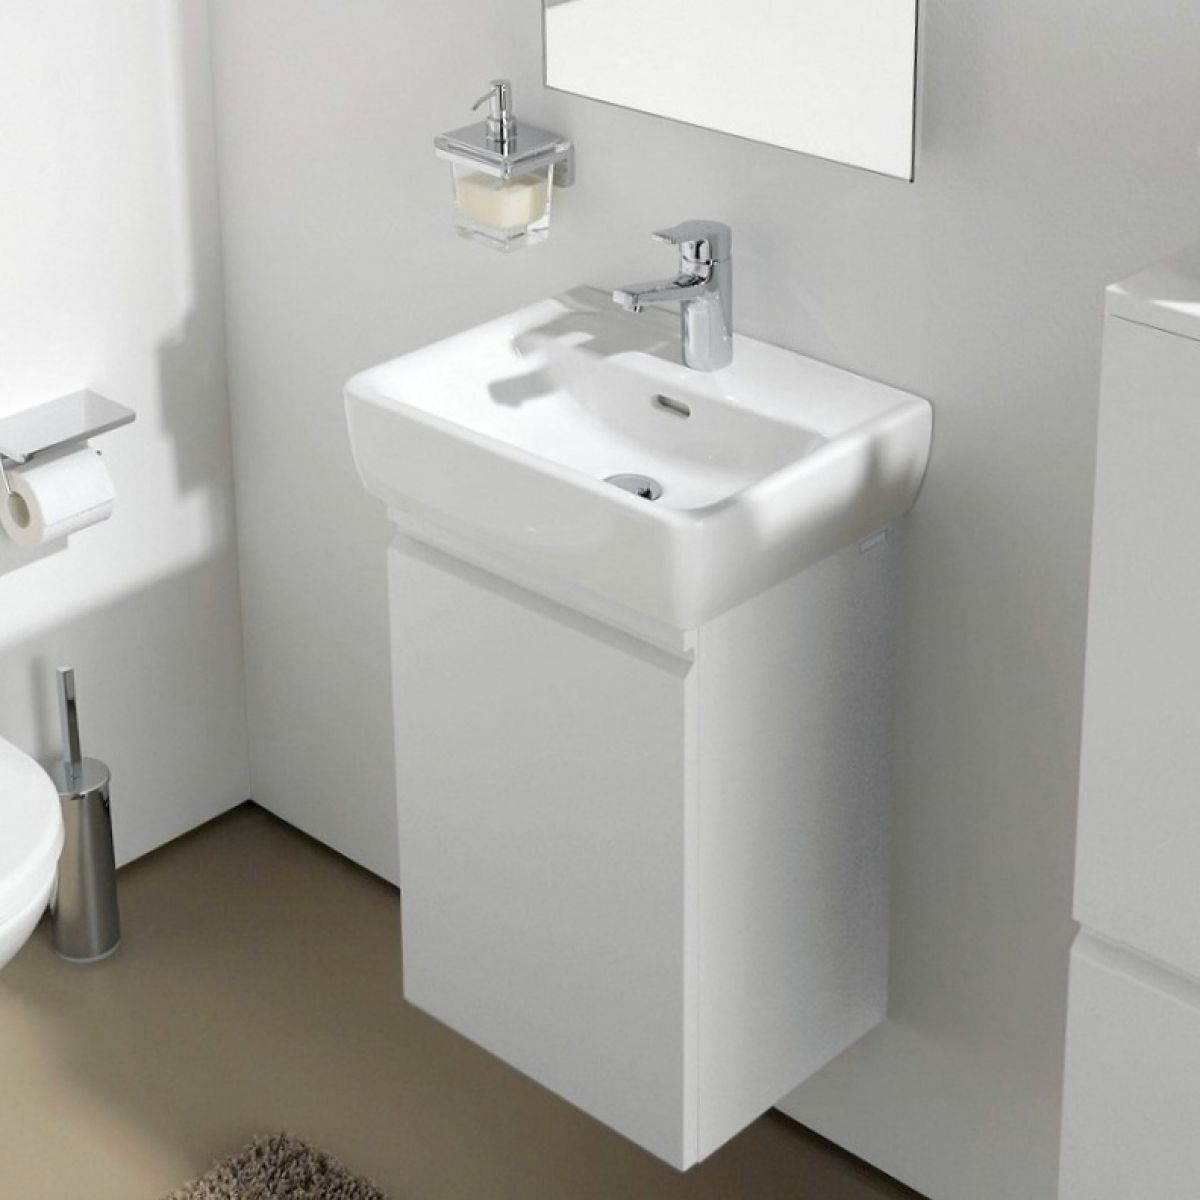 Laufen pro 38cm small vanity unit with basin uk bathrooms for Small baths 1200